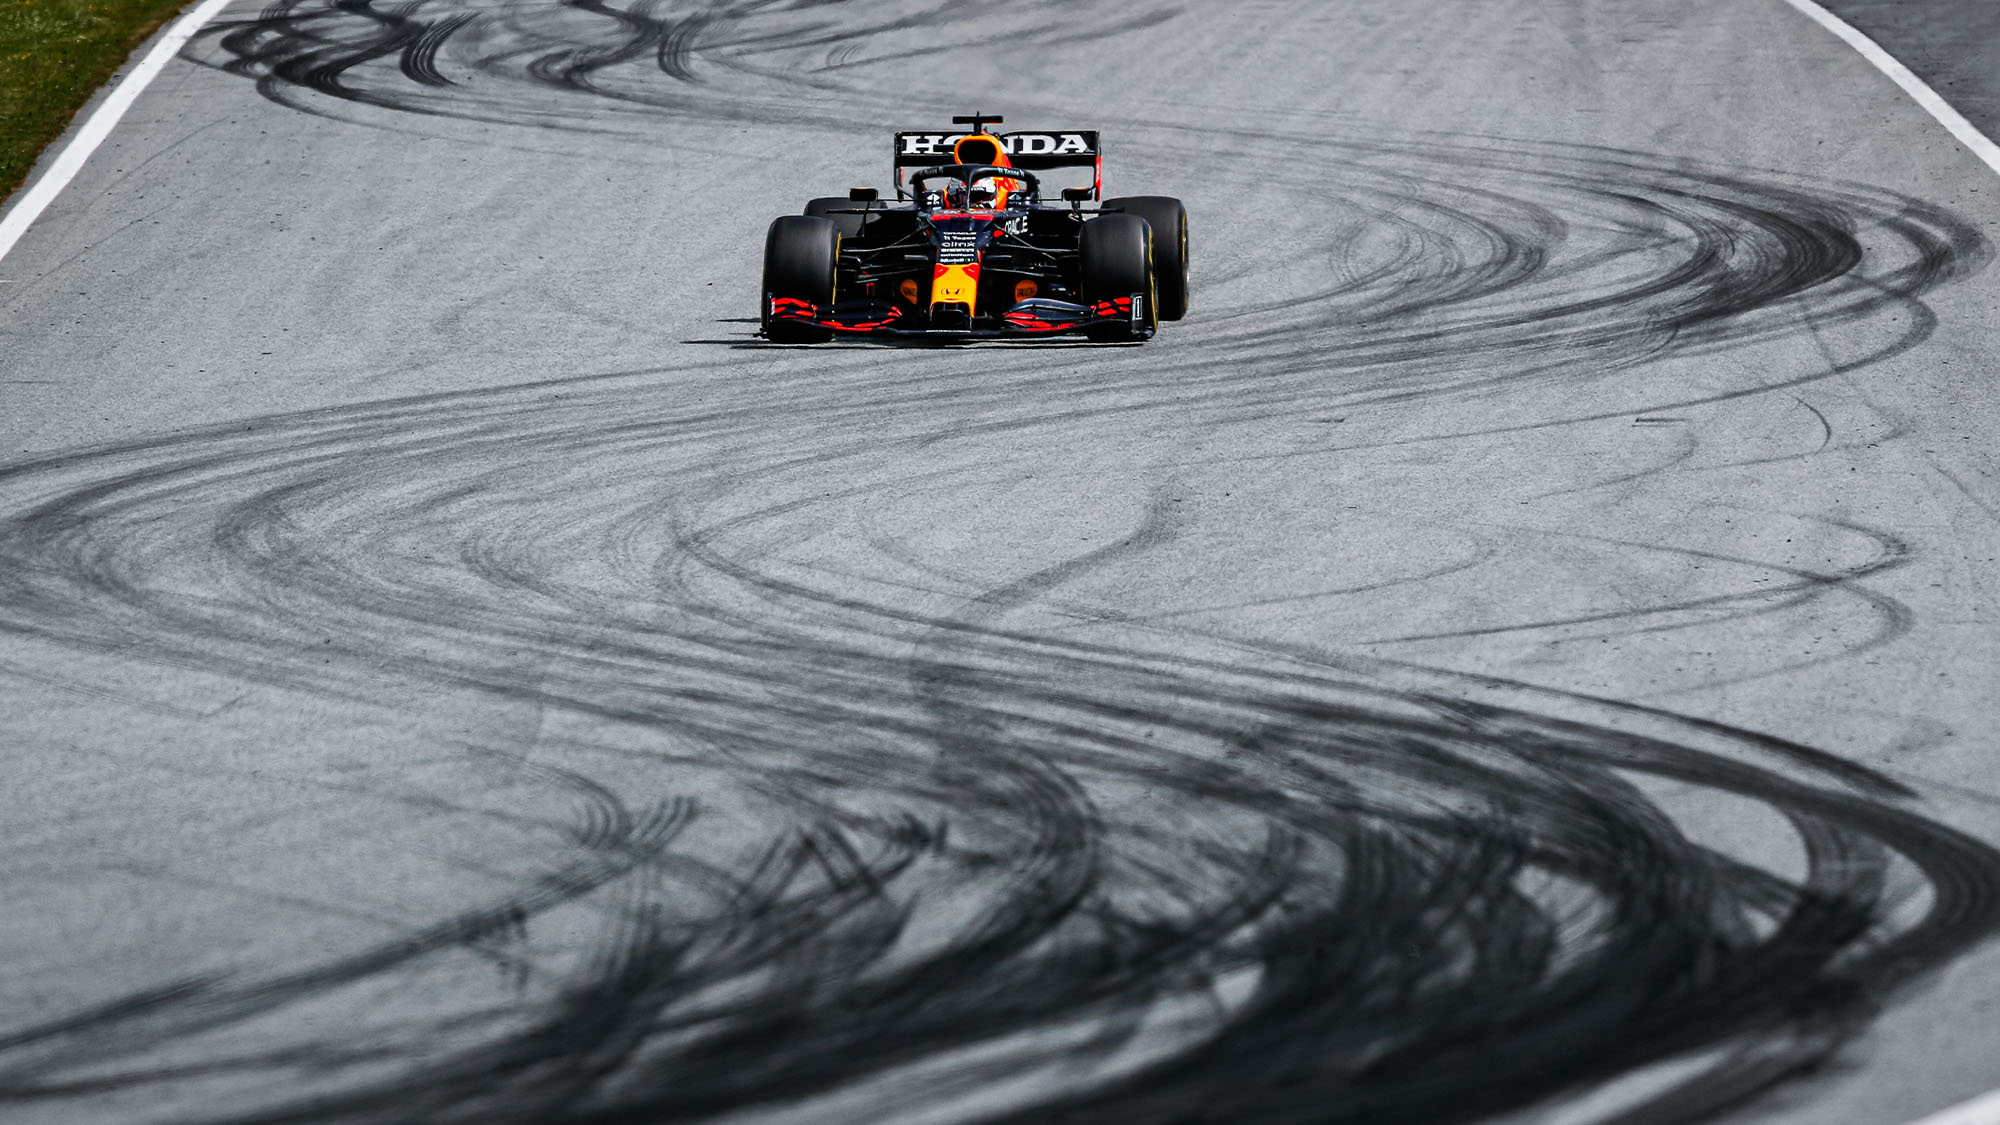 Max Verstappen drives over tyre marks at the 2021 Styrian Grand Prix